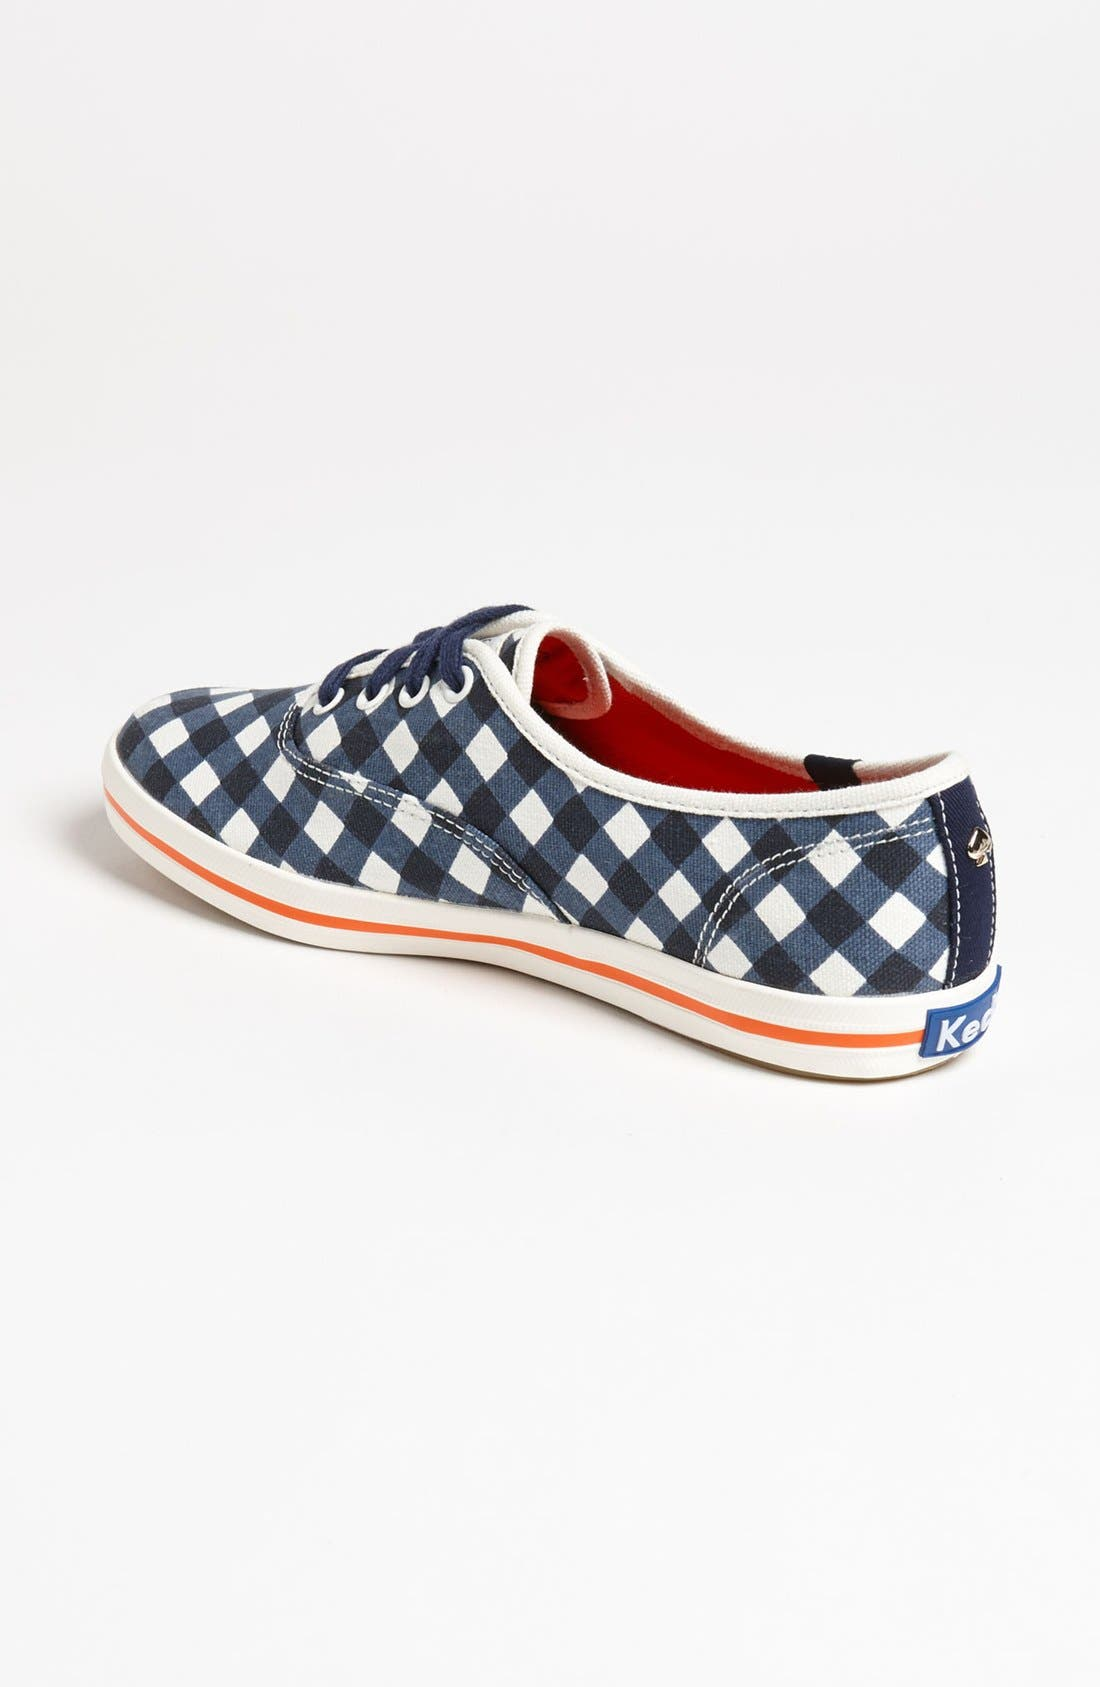 Alternate Image 2  - Keds® for kate spade new york 'kick' sneaker